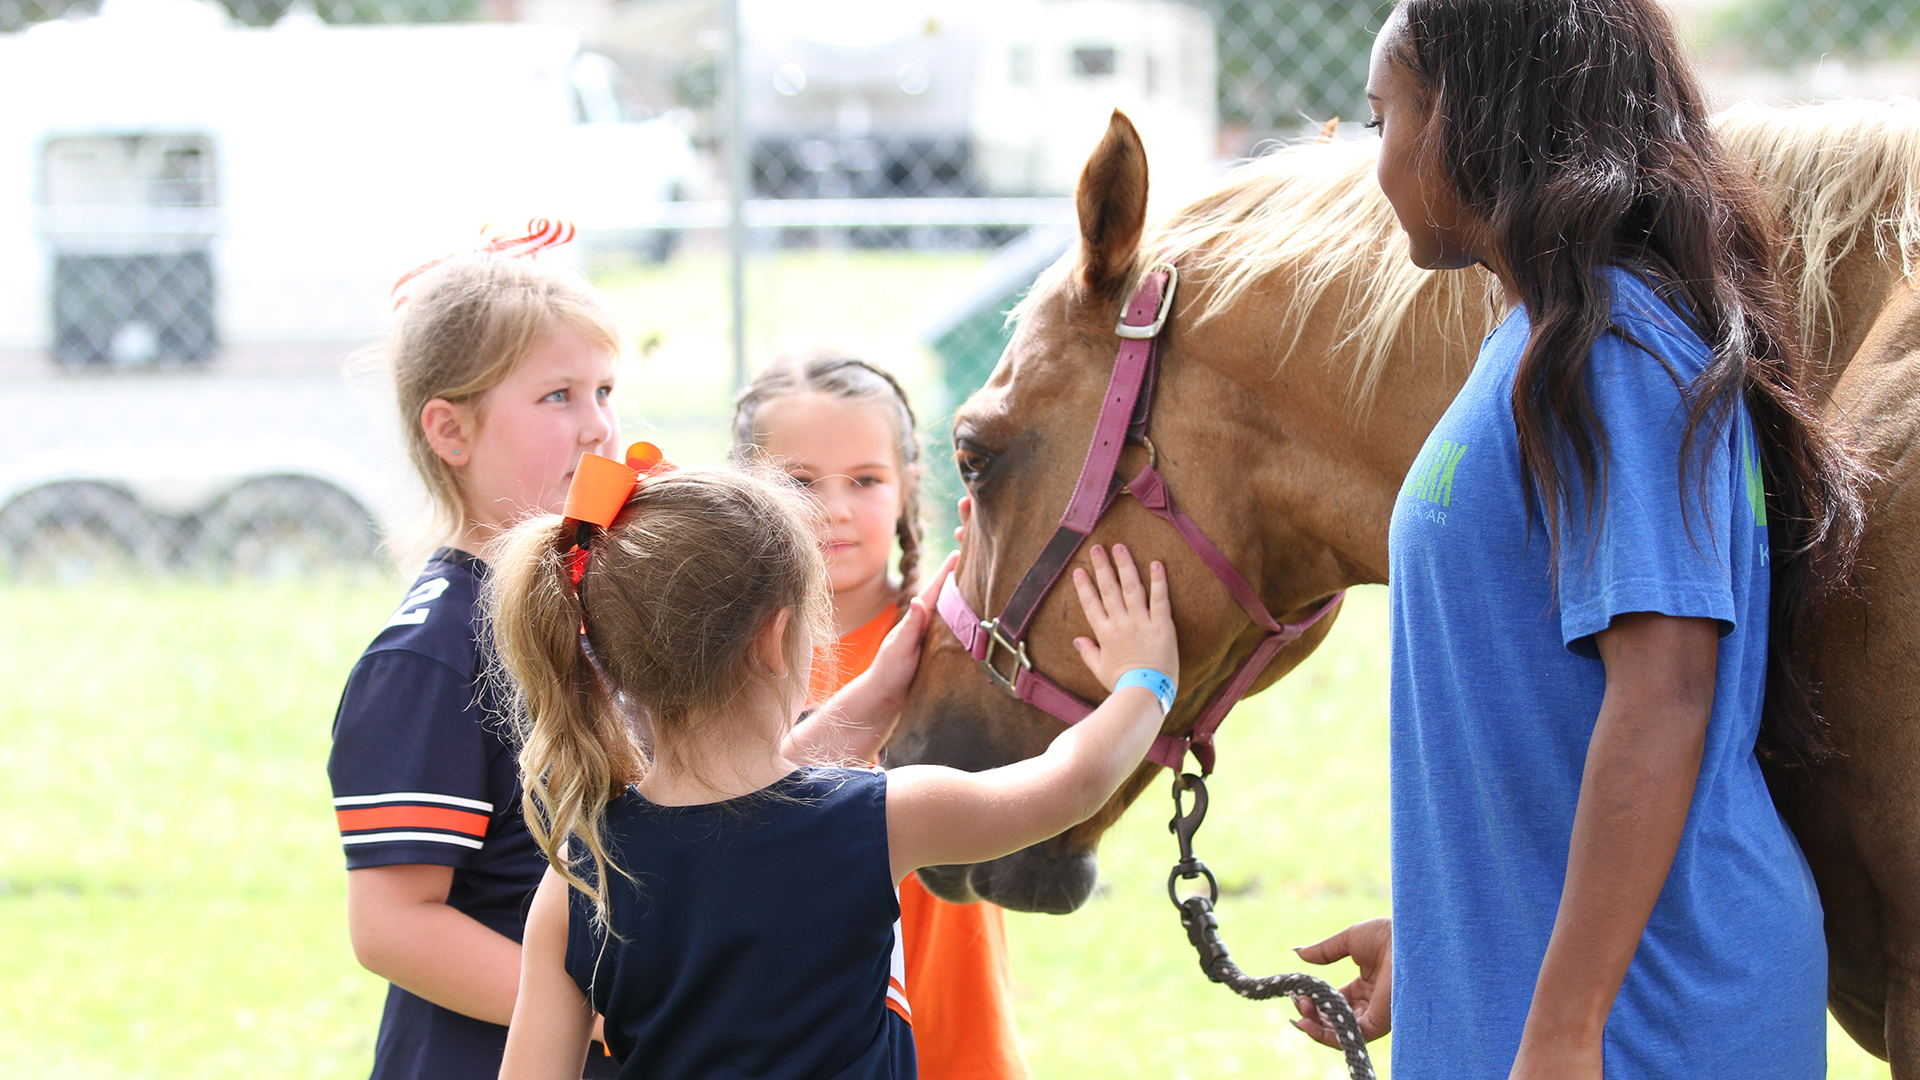 African American female college student, majoring in Animal Sciences, with young girls in Auburn Tigers apparel petting a horse.